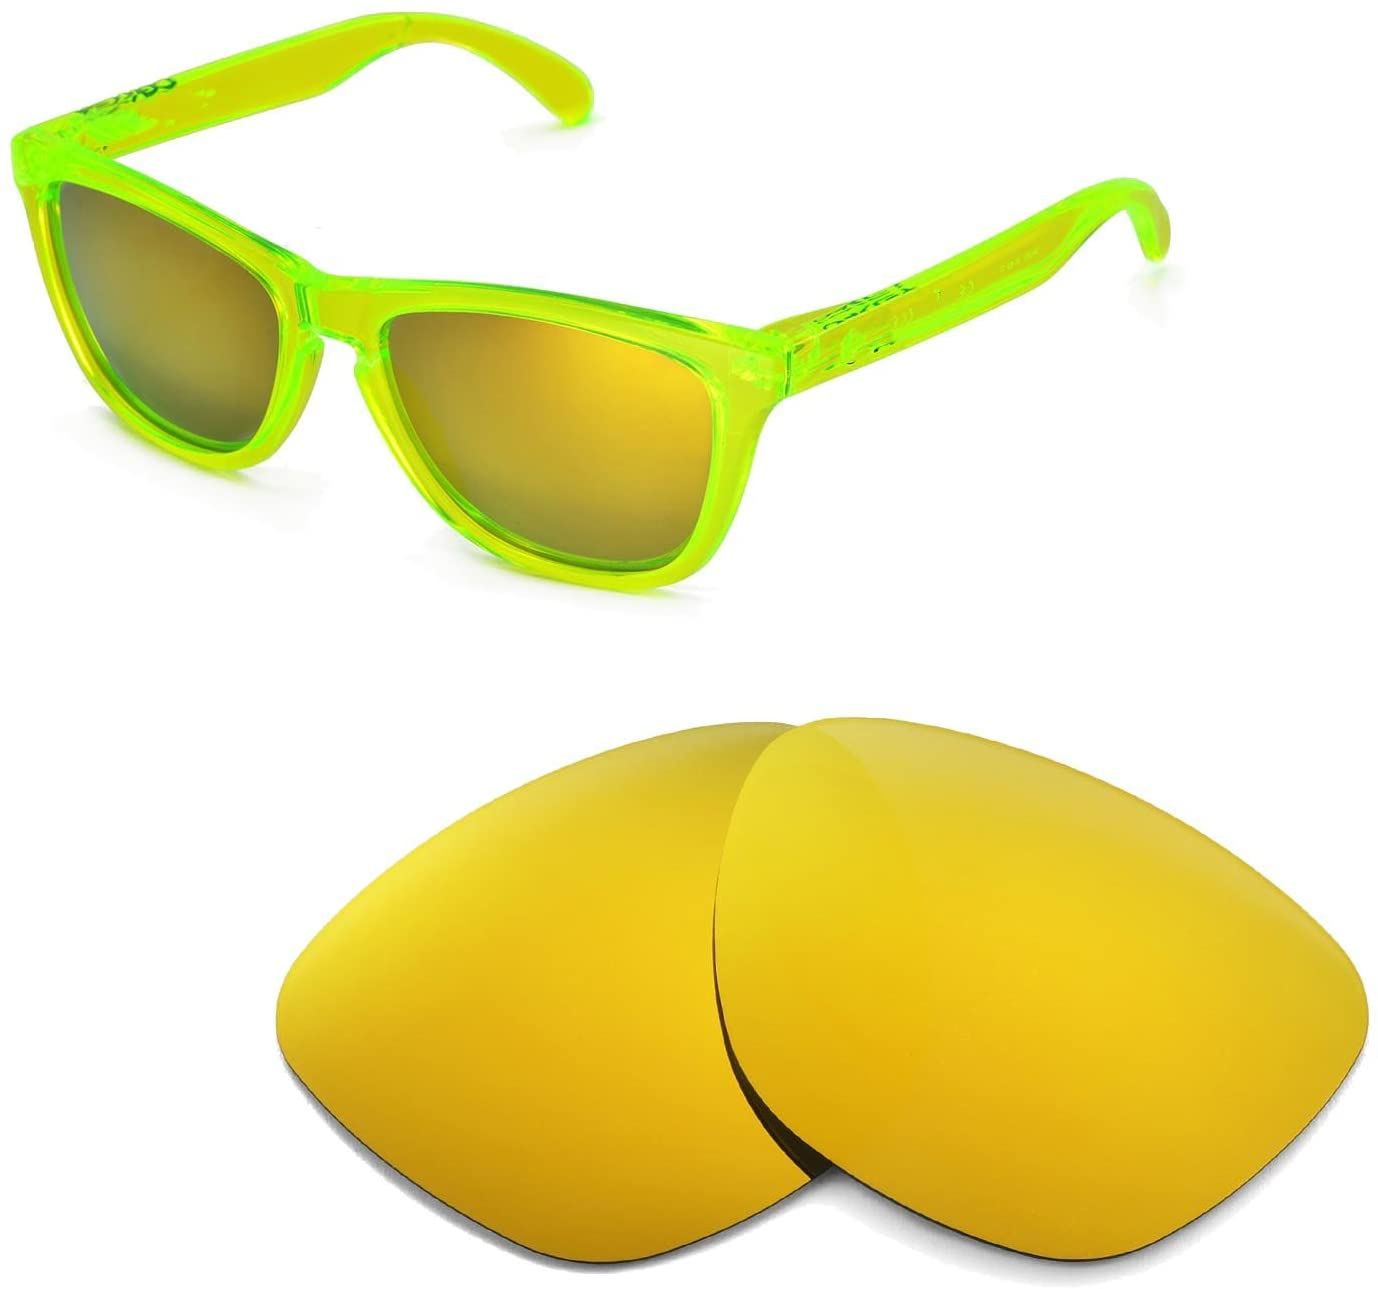 Walleva Replacement Lenses for Oakley Frogskins Sunglasses - 11 Options Available